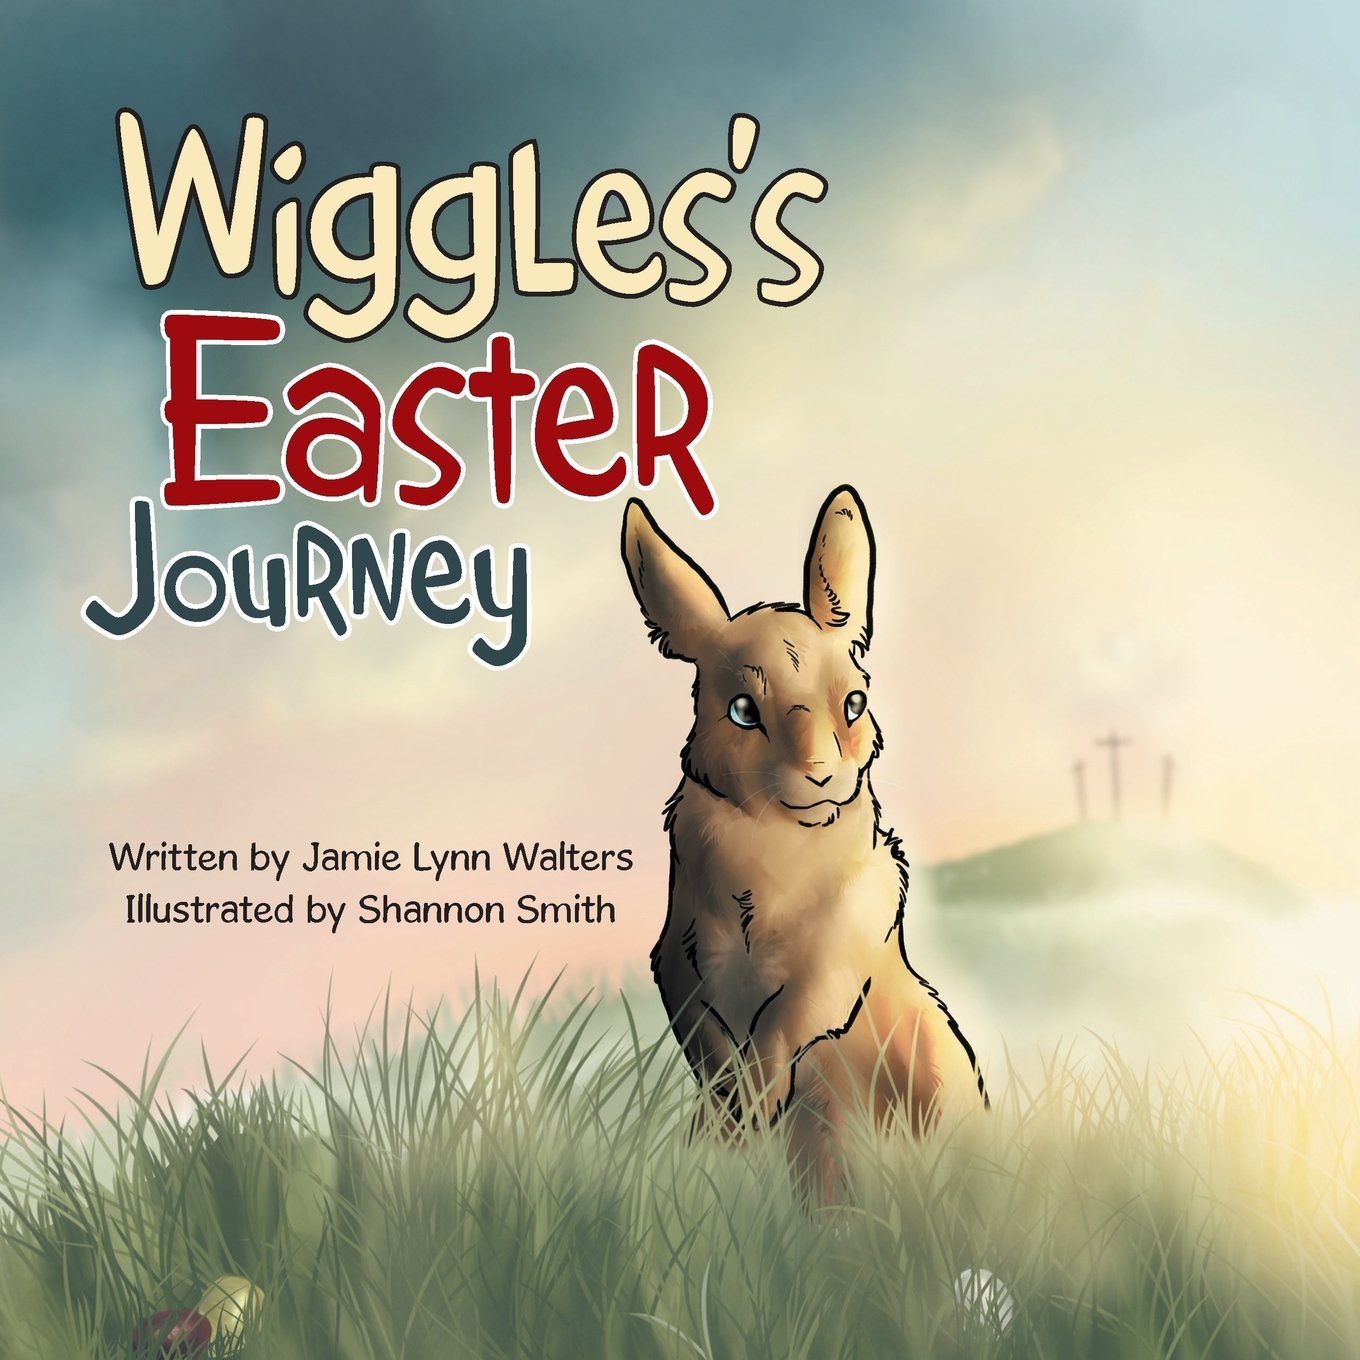 Wiggles's Easter Journey